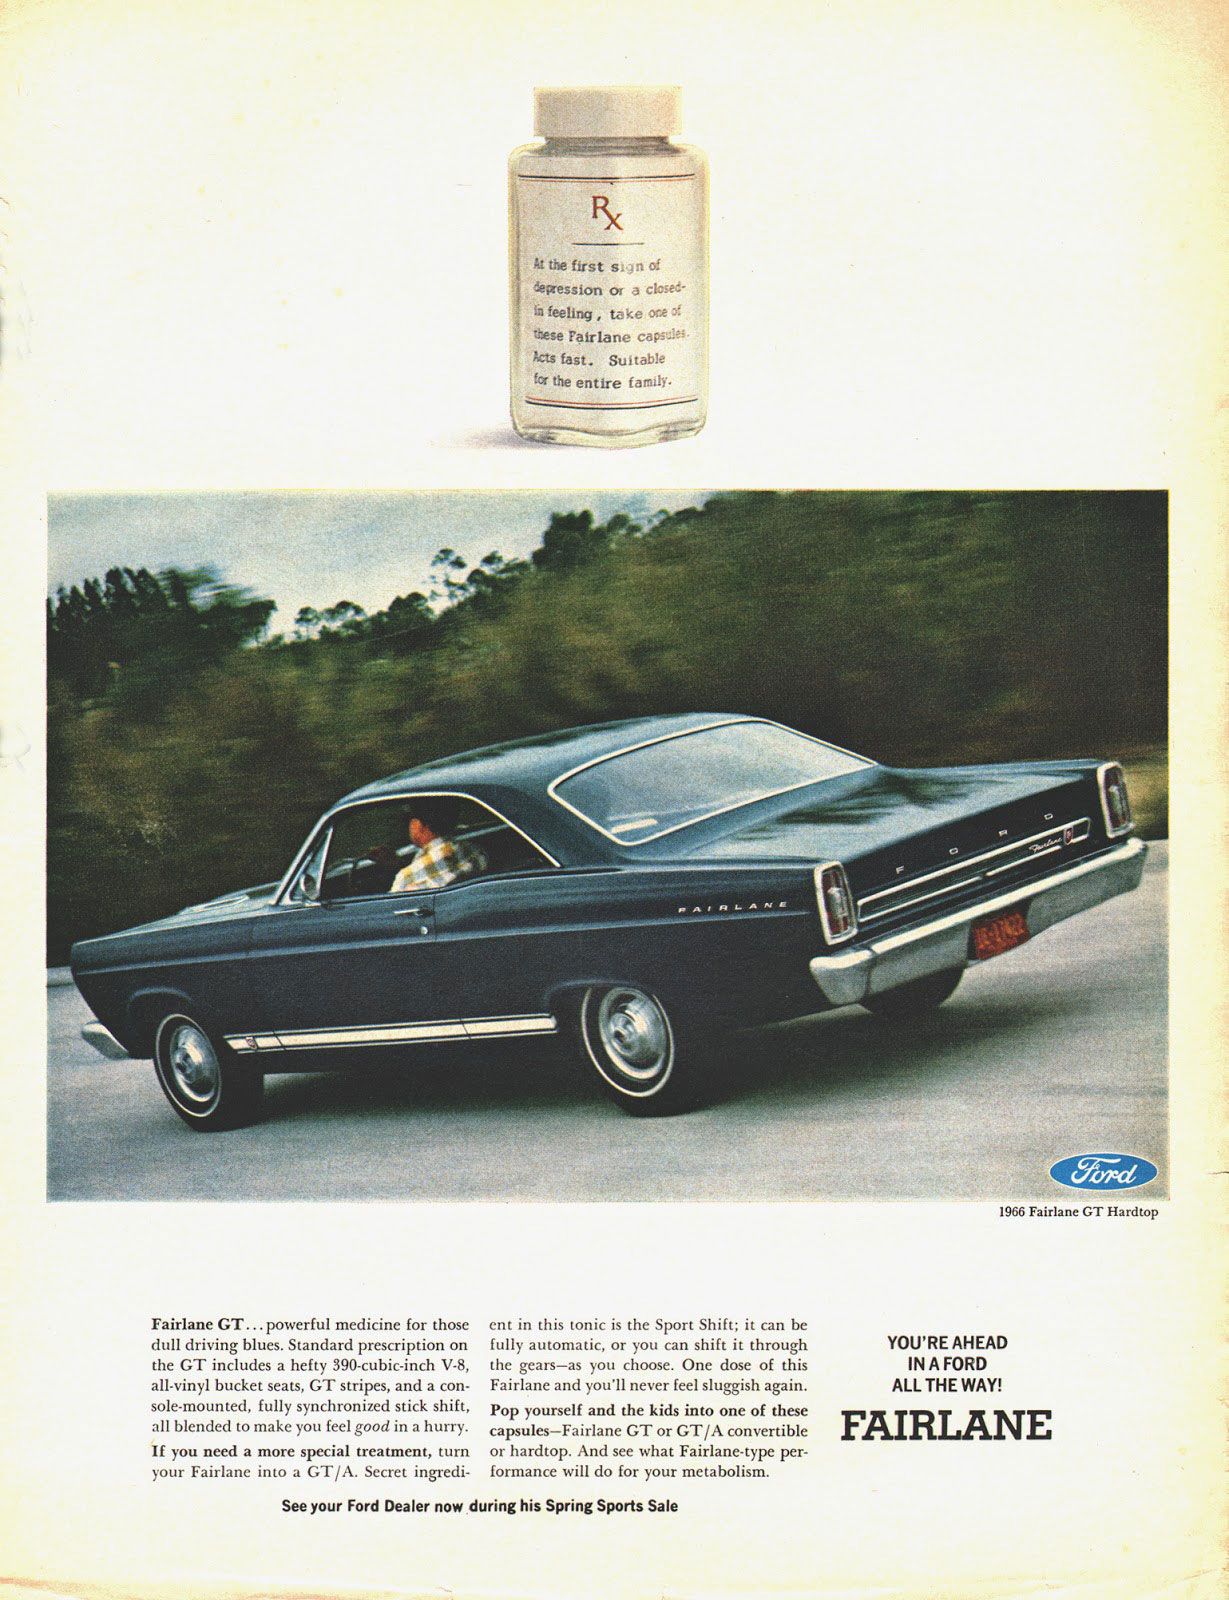 At the first sign of depression or a closed-in feeling, take one of these Ford Fairlane capsules. Acts fast. Suitable for the entire family.  Fairlane GT... powerful medicine for those dull driving blues. Standard prescription on the GT includes a hefty 390-cubic-inch V-8, all-vinyl bucket seats, GT stripes, and a con-sole-mounted, fully synchronized stick shift, all blended to make you feel good in a hurry. If you need a more special treatment, turn your Fairlane into a GT/A. Secret ingredi- See your Ford Dealer now  ent in this tonic is the Sport Shift; it can be fully automatic, or you can shift it through the gears—as you thoose. One dose of this Fairlane and you'll never feel sluggish again. Pop yourself and the kids into one of these capsules—Fairlane GT or GT/A convertible or hardtop. And see what Fairlane-type per-formance will do for your metabolism.  during his Spring Sports Sale  1966 Fairlane GT Hardtop  YOU'RE AHEAD IN A FORD ALL THE WAY!  FAIRLANE